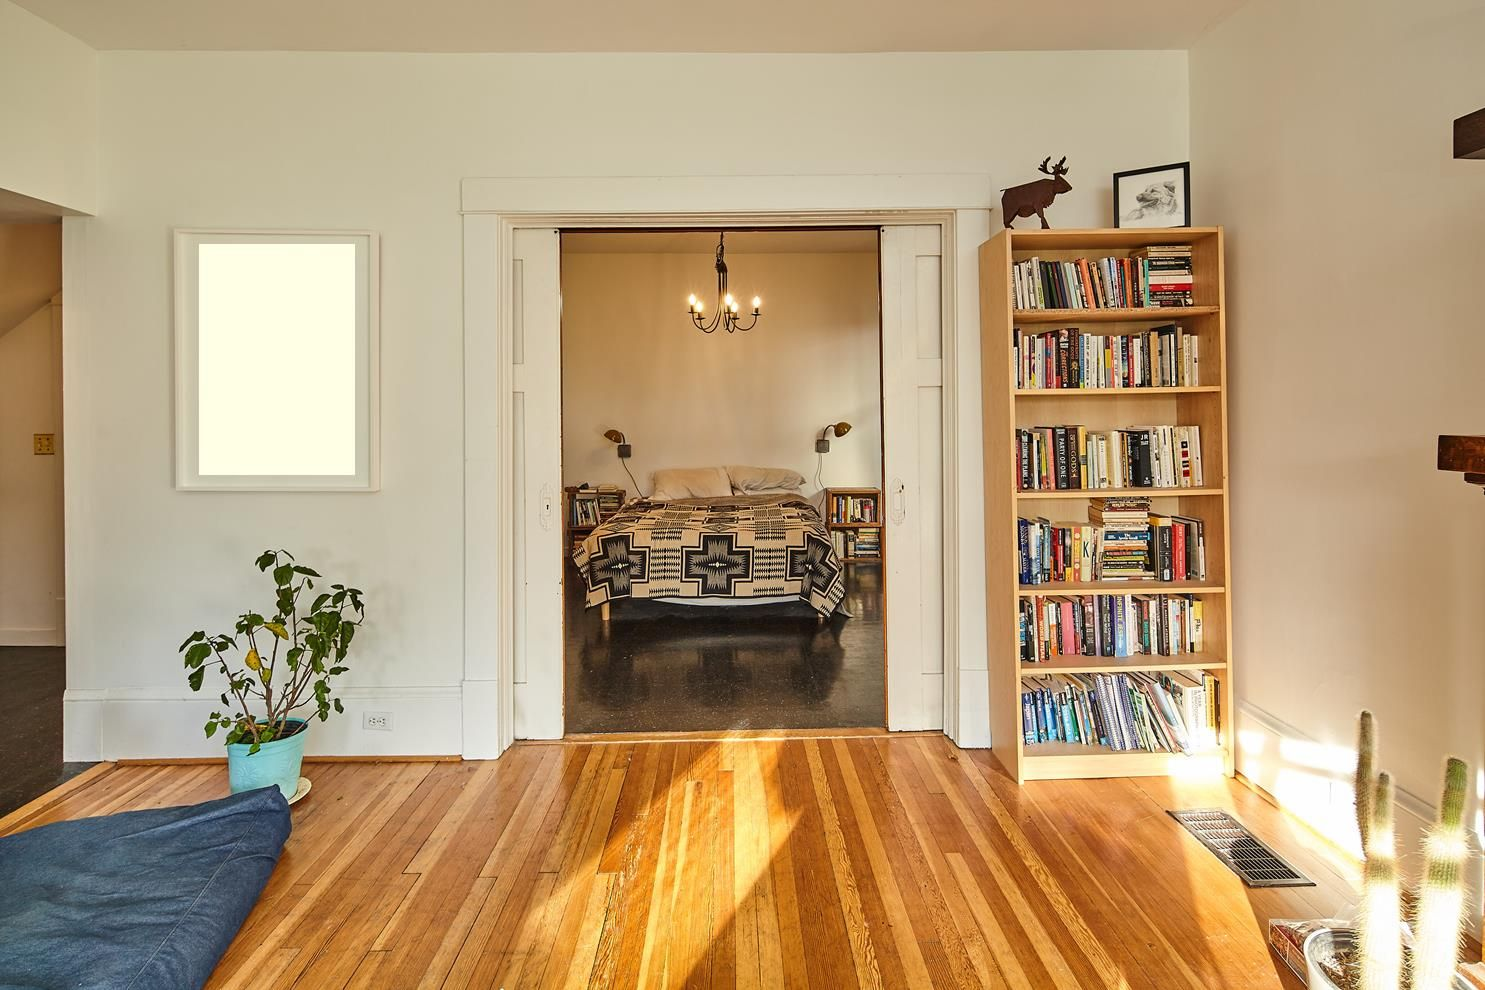 Photo 13: Photos: 1943 NAPIER Street in Vancouver: Grandview Woodland House for sale (Vancouver East)  : MLS®# R2423548